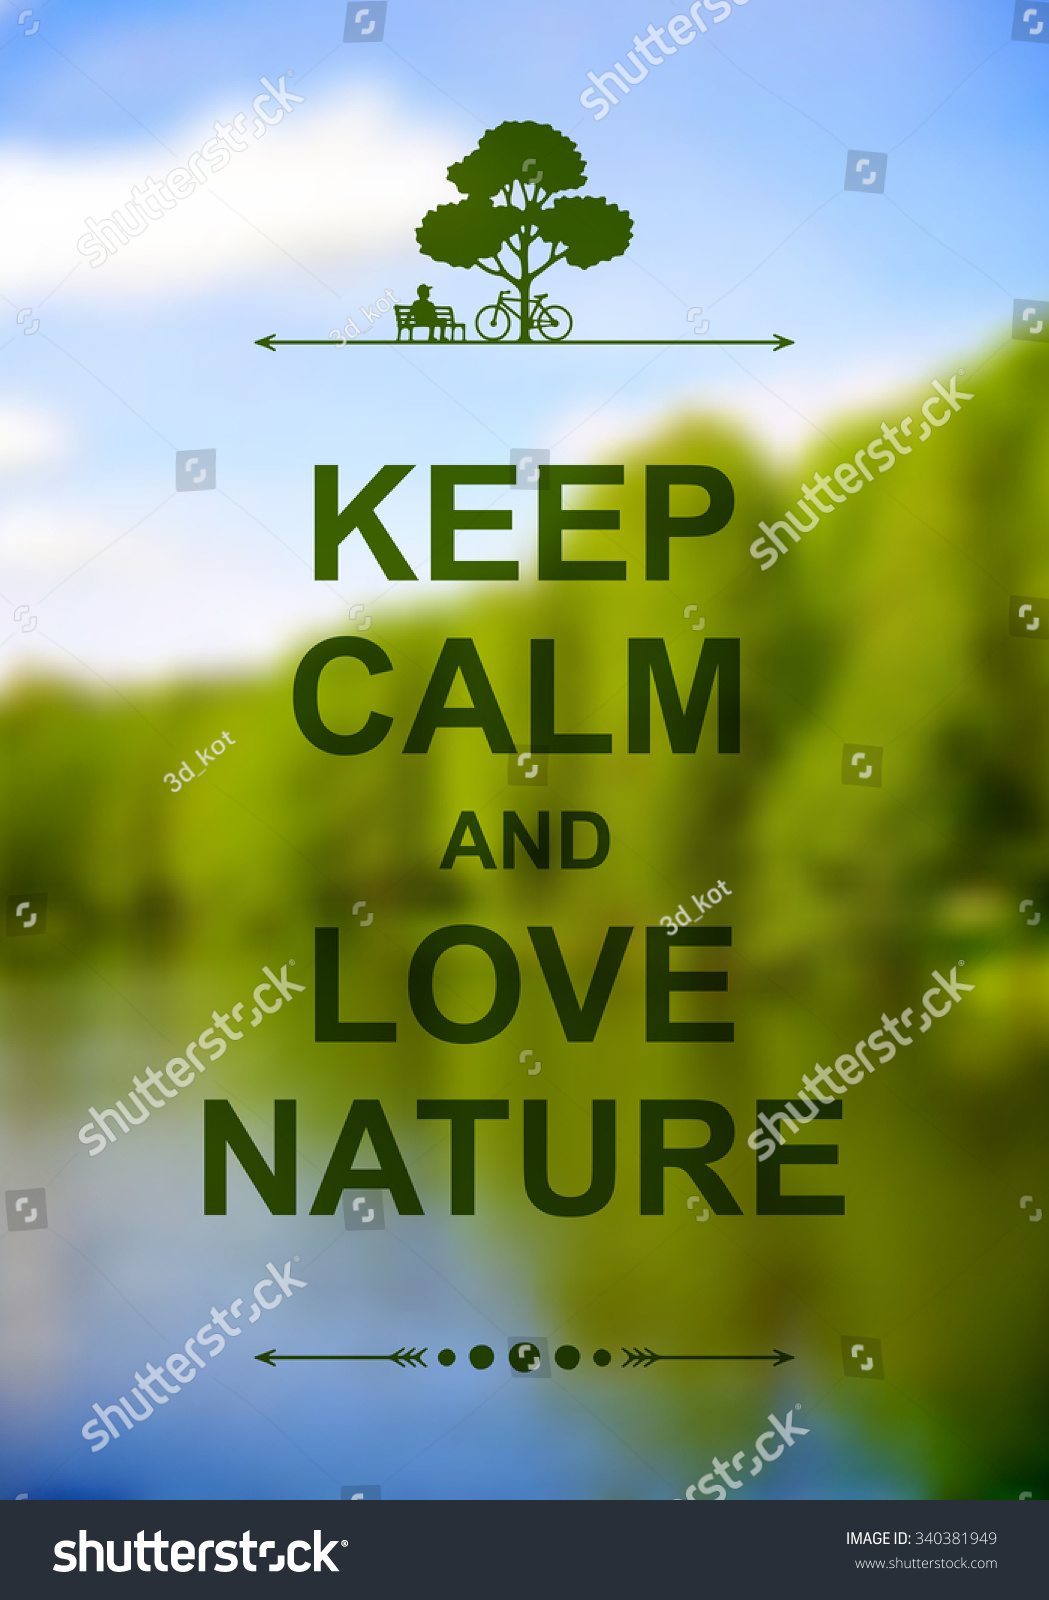 Wandposter Natur Keep Calm Love Nature Poster Blurred Stock Vector Royalty Free